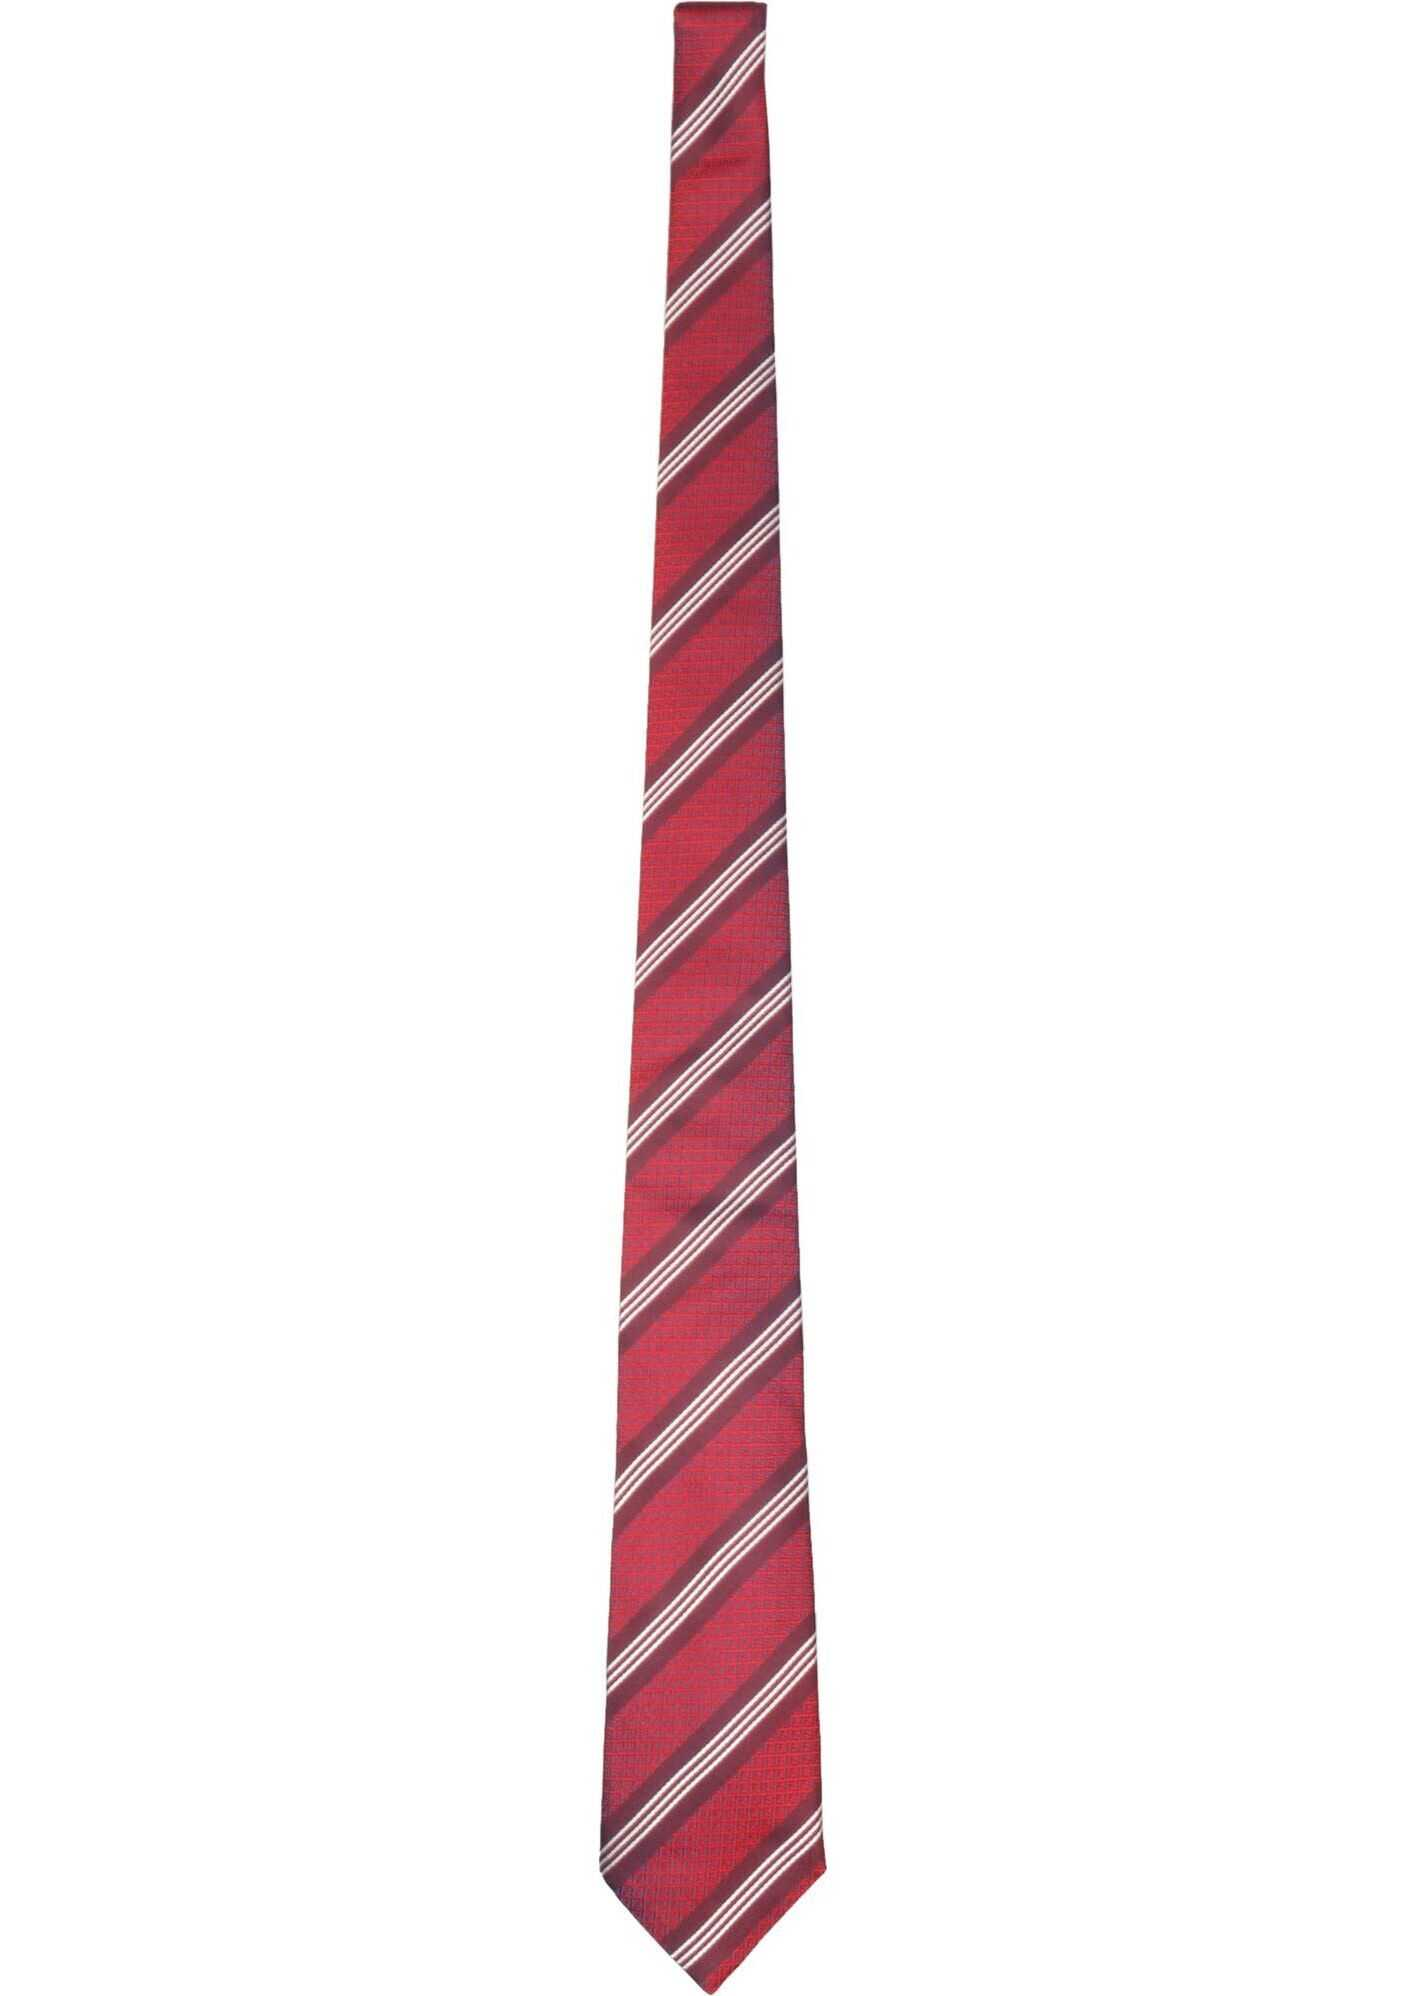 Fendi Cotton Tie RED